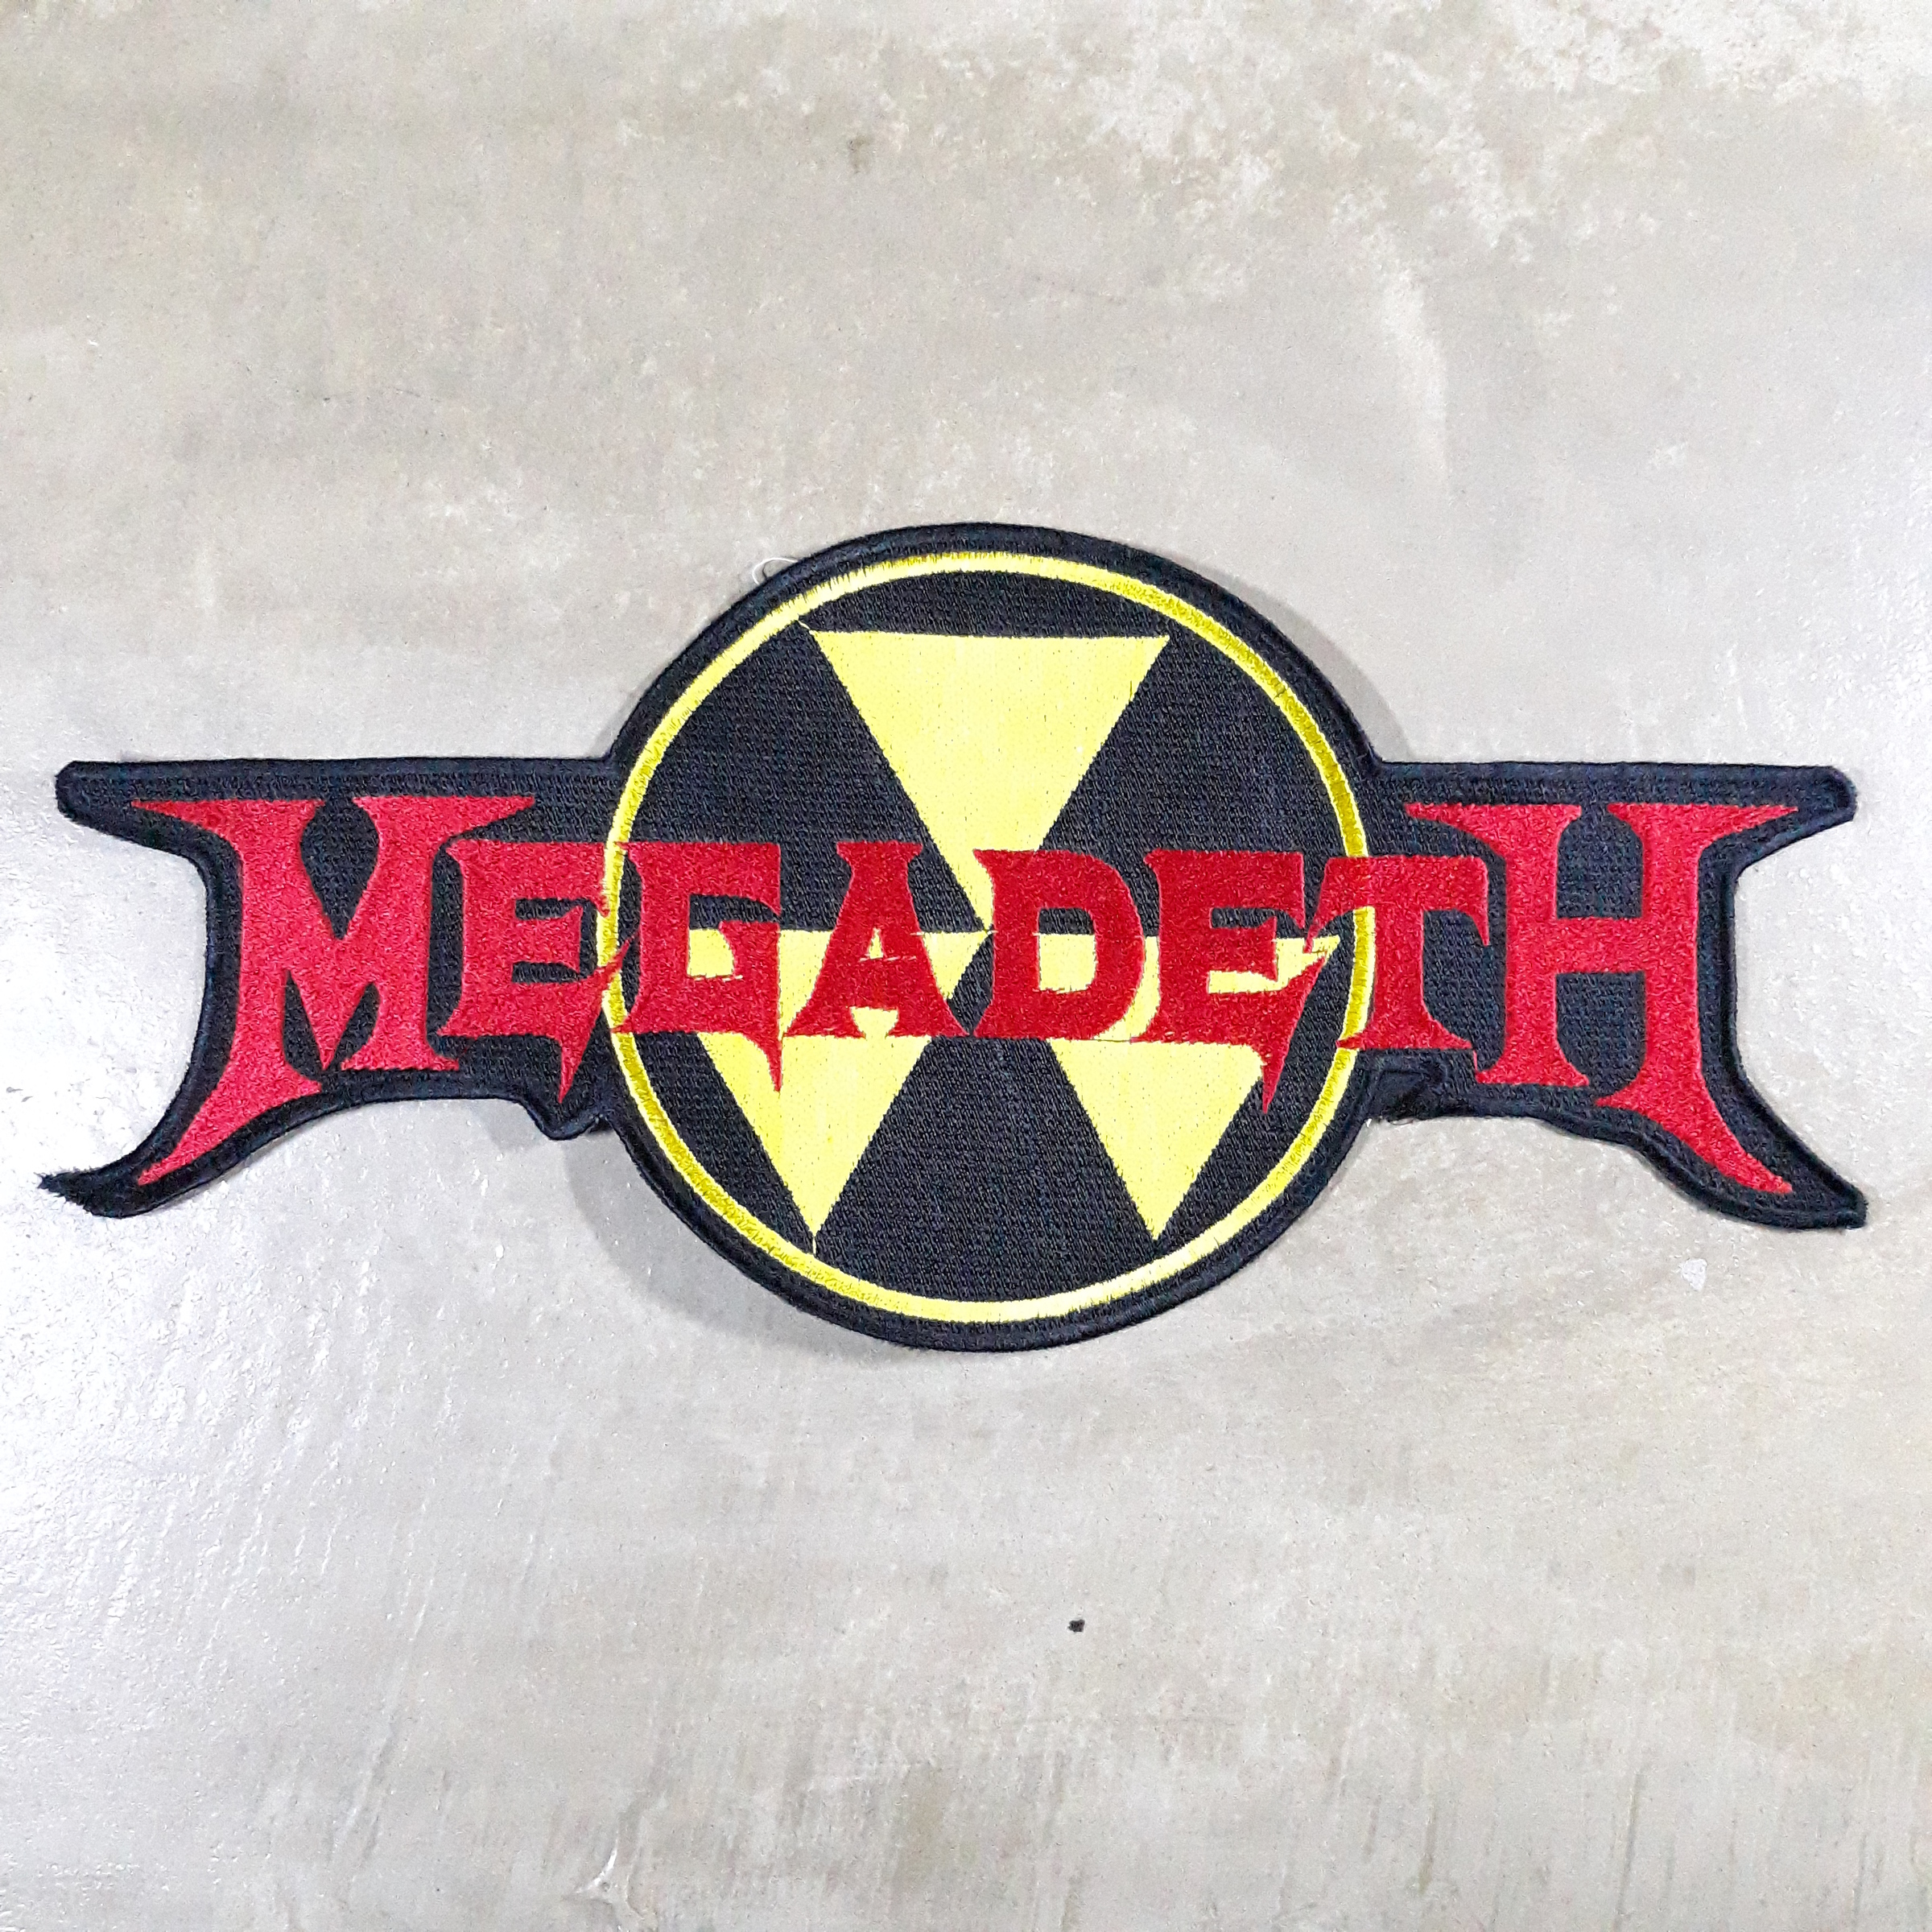 Megadeth-logo with radiation backpatch.jpg